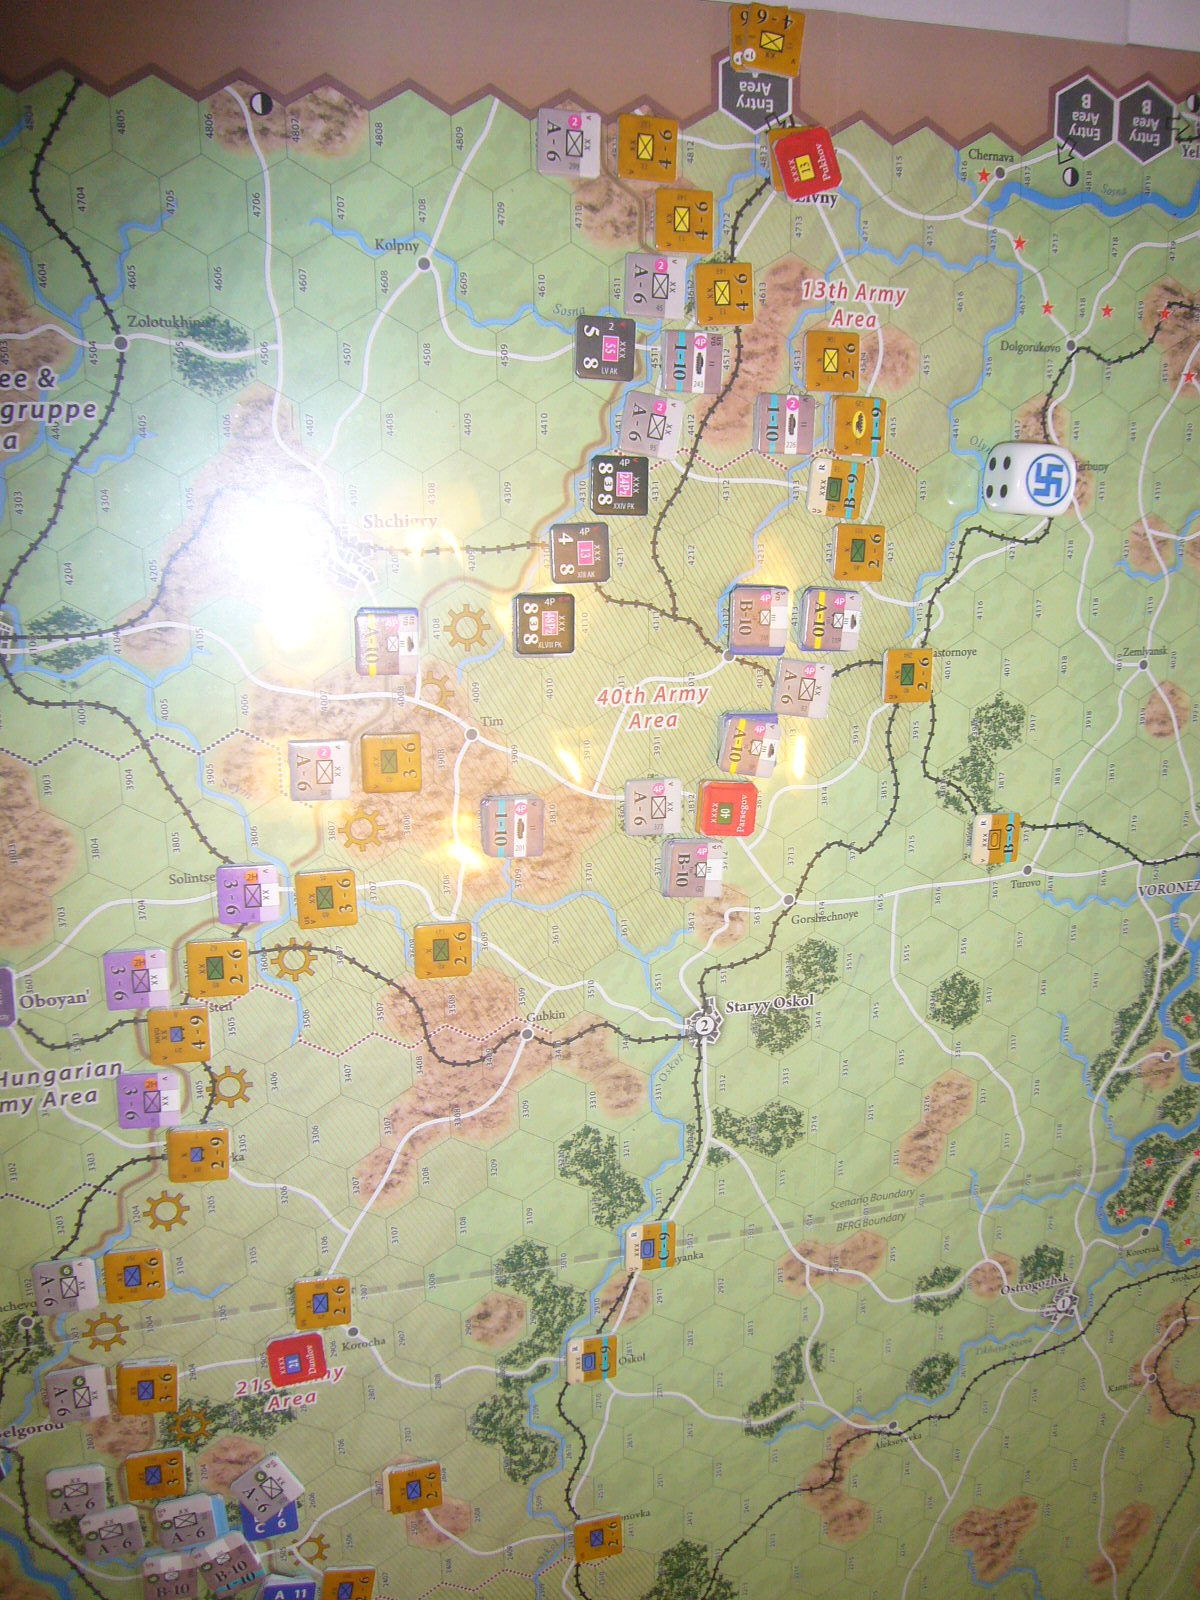 (Compass)FALL BLAU: Army Group South, June to December 1942 青作戦:史実の7月キャンペーンお試し5人戦❶_b0173672_16240125.jpg